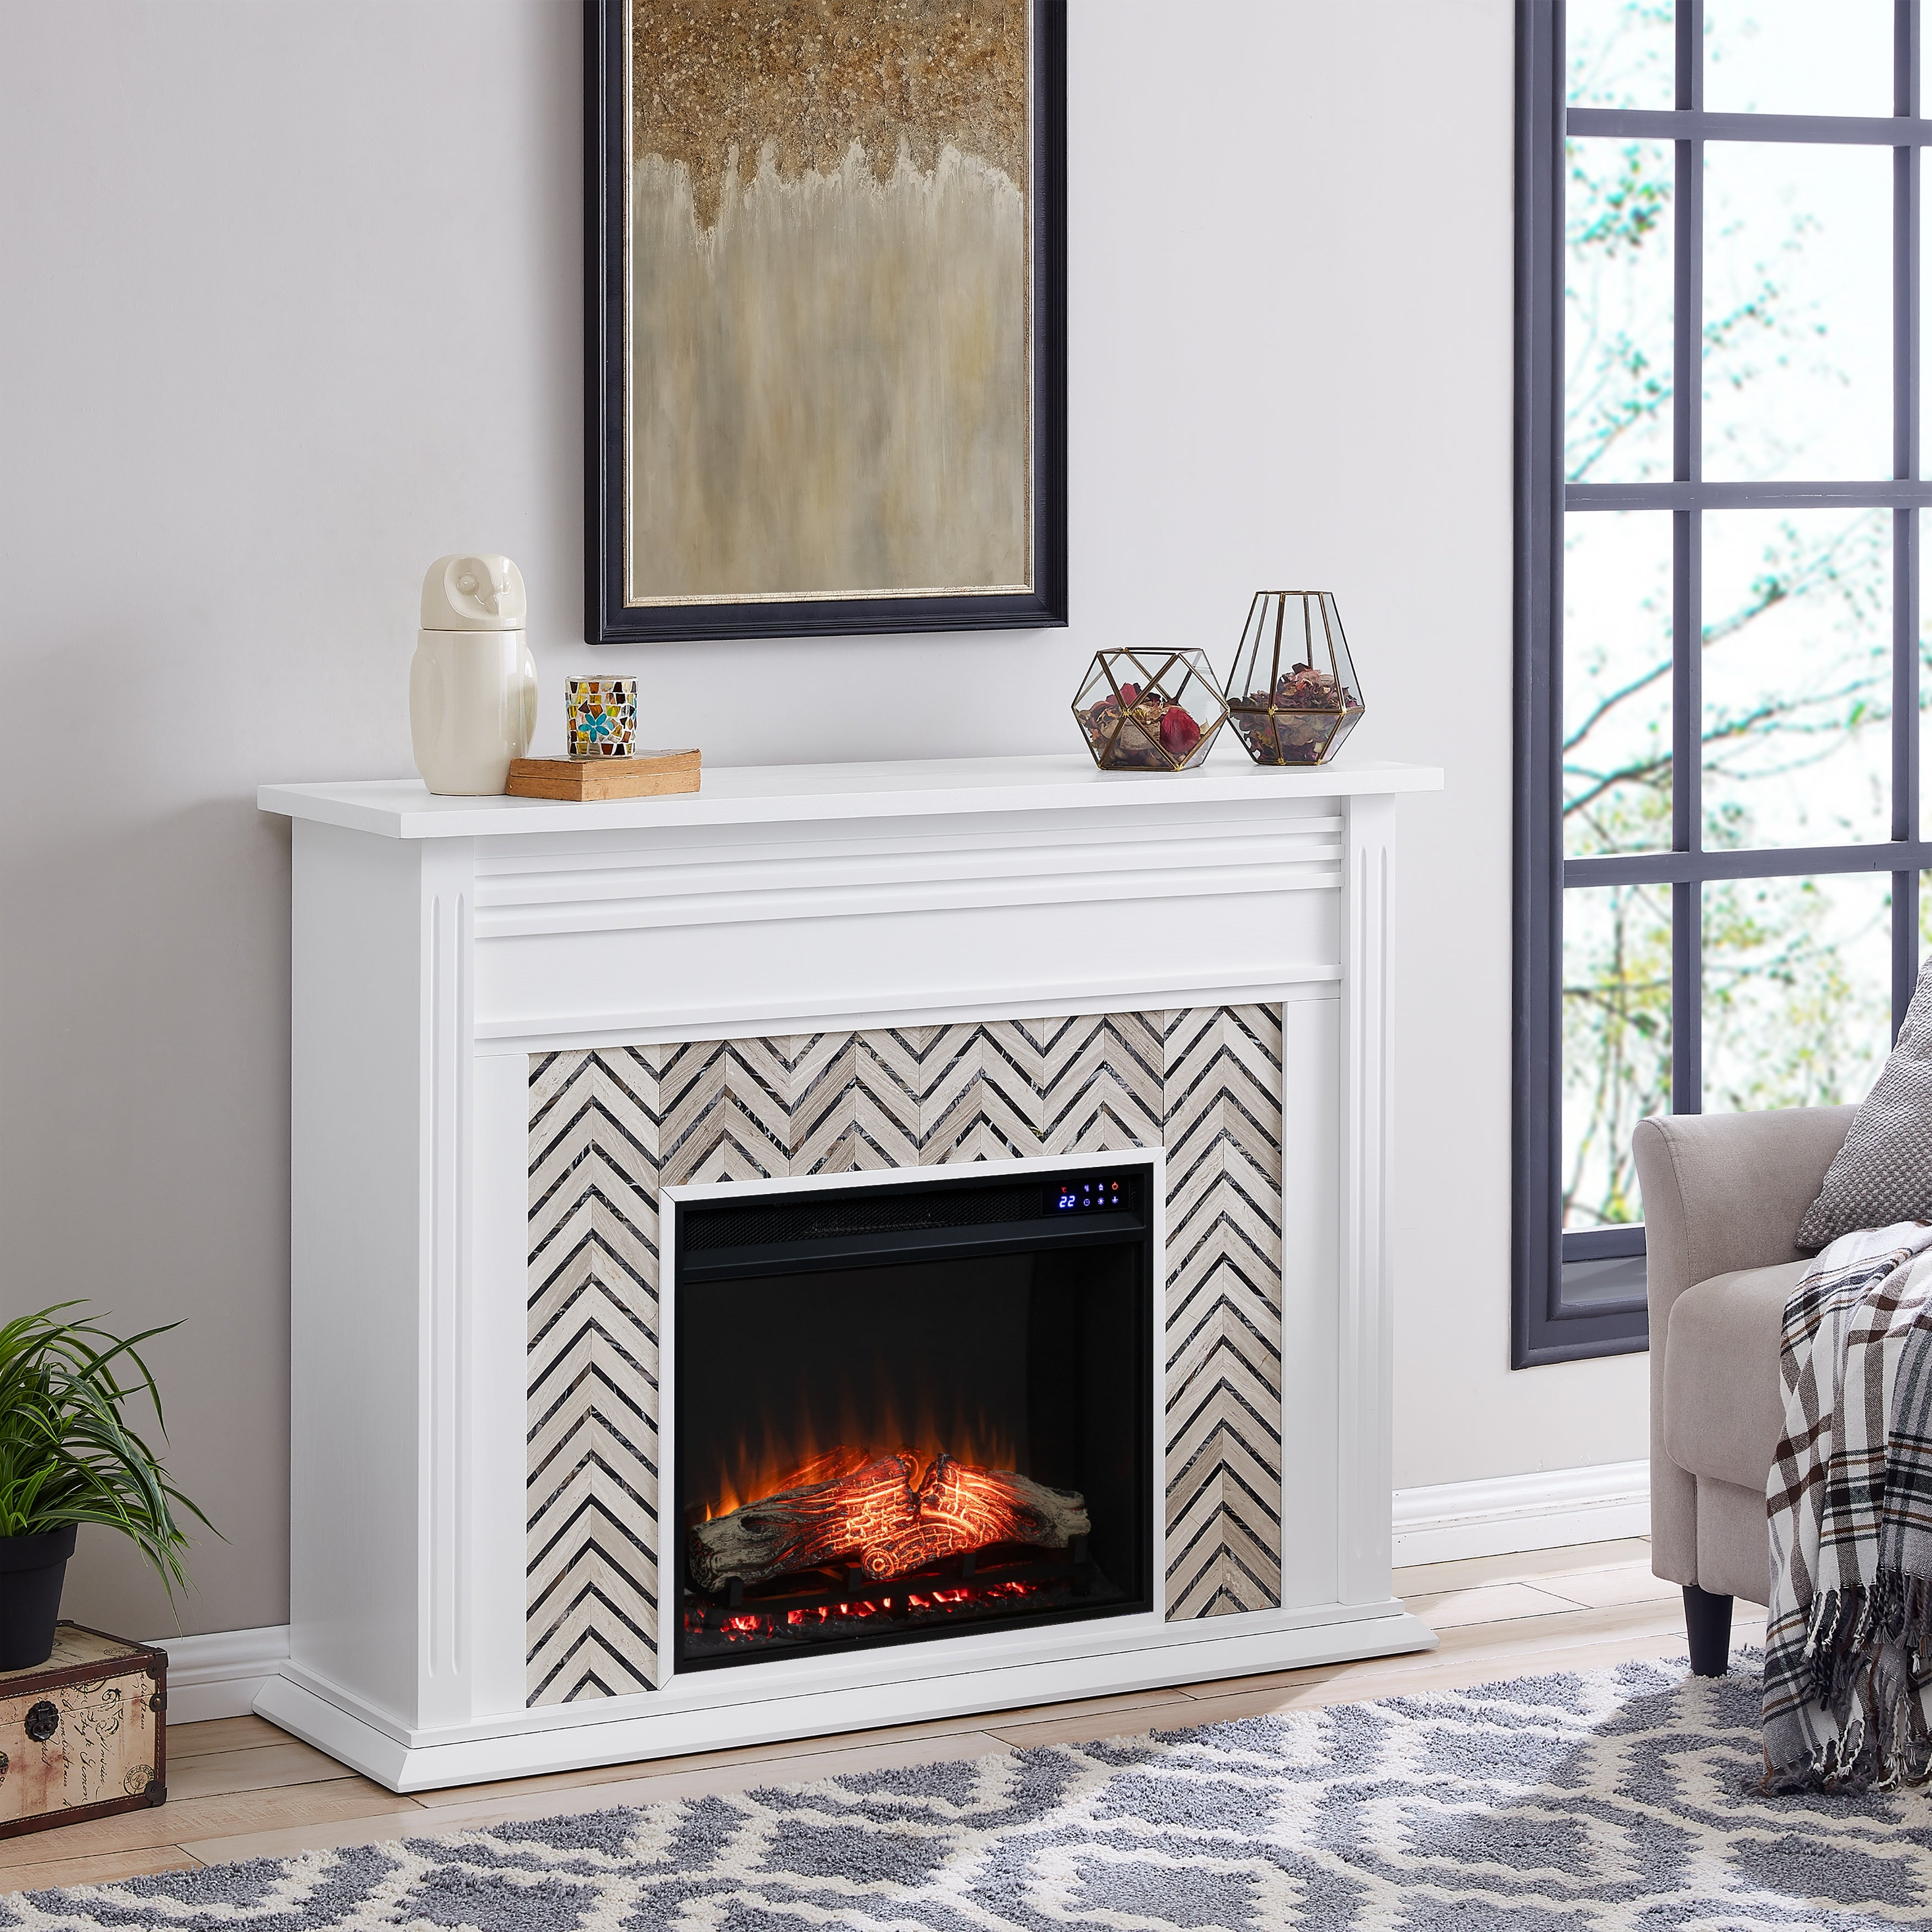 Heidi Contemporary White With Marble Electric Fireplace Overstock 29236310 White W Brick Accent Firebox